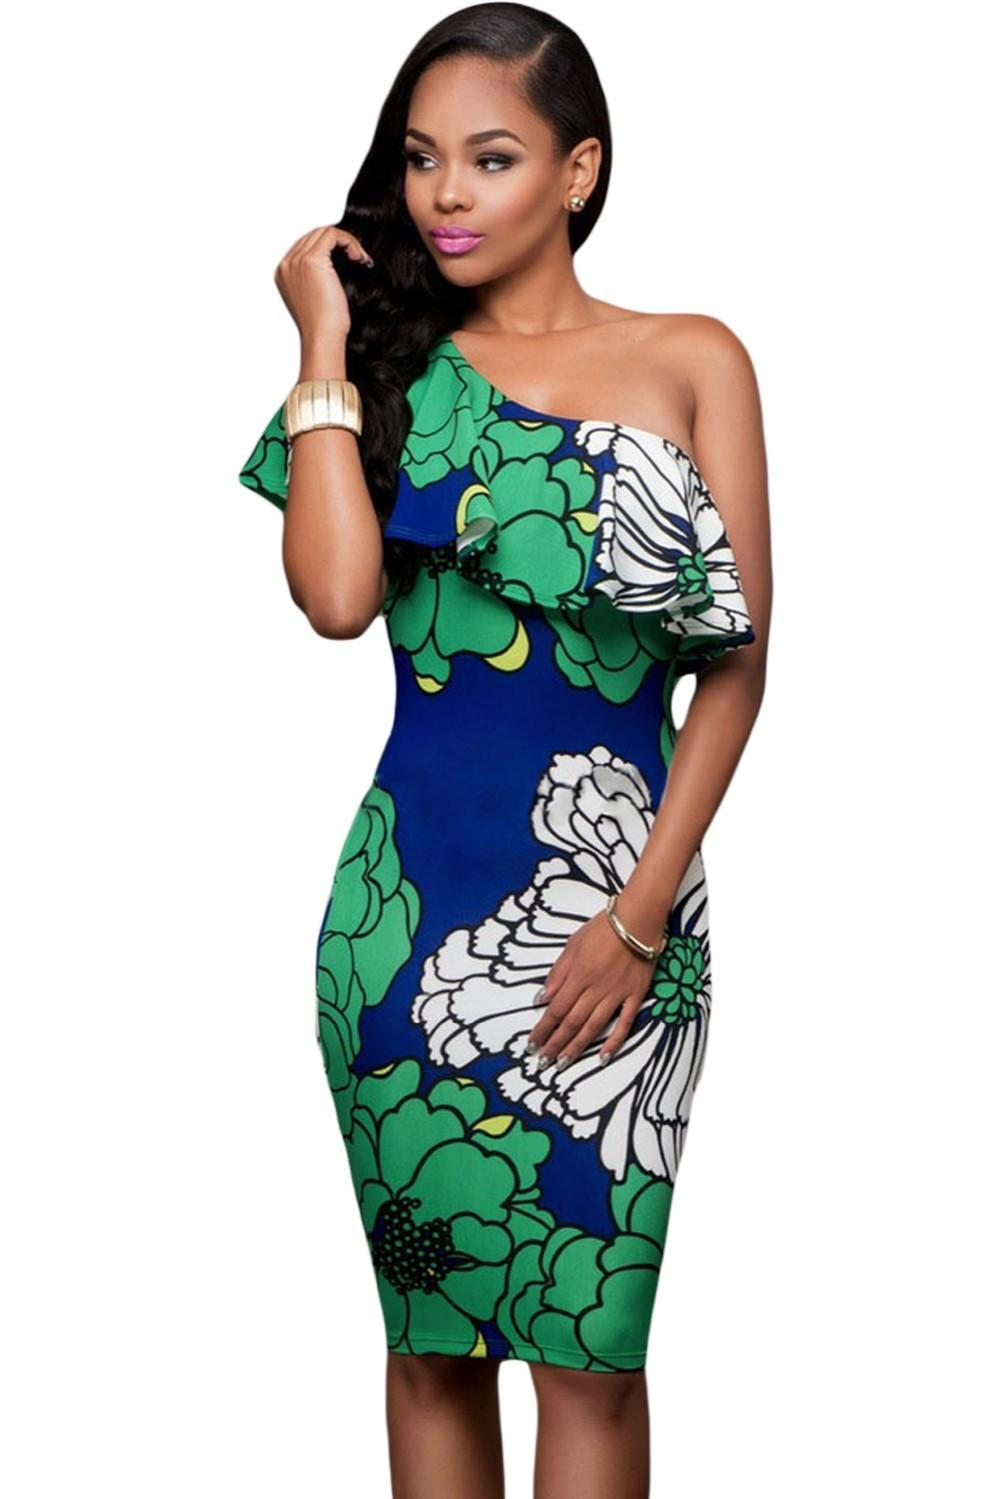 2018 New Pattern Strapless Flower Printing Off Shoulder One Shoulder Sexy  Bodysuit Bodycon Dress Dresses Online with  14.38 Piece on Xh871012 s Store  ... c0d0ae70f694